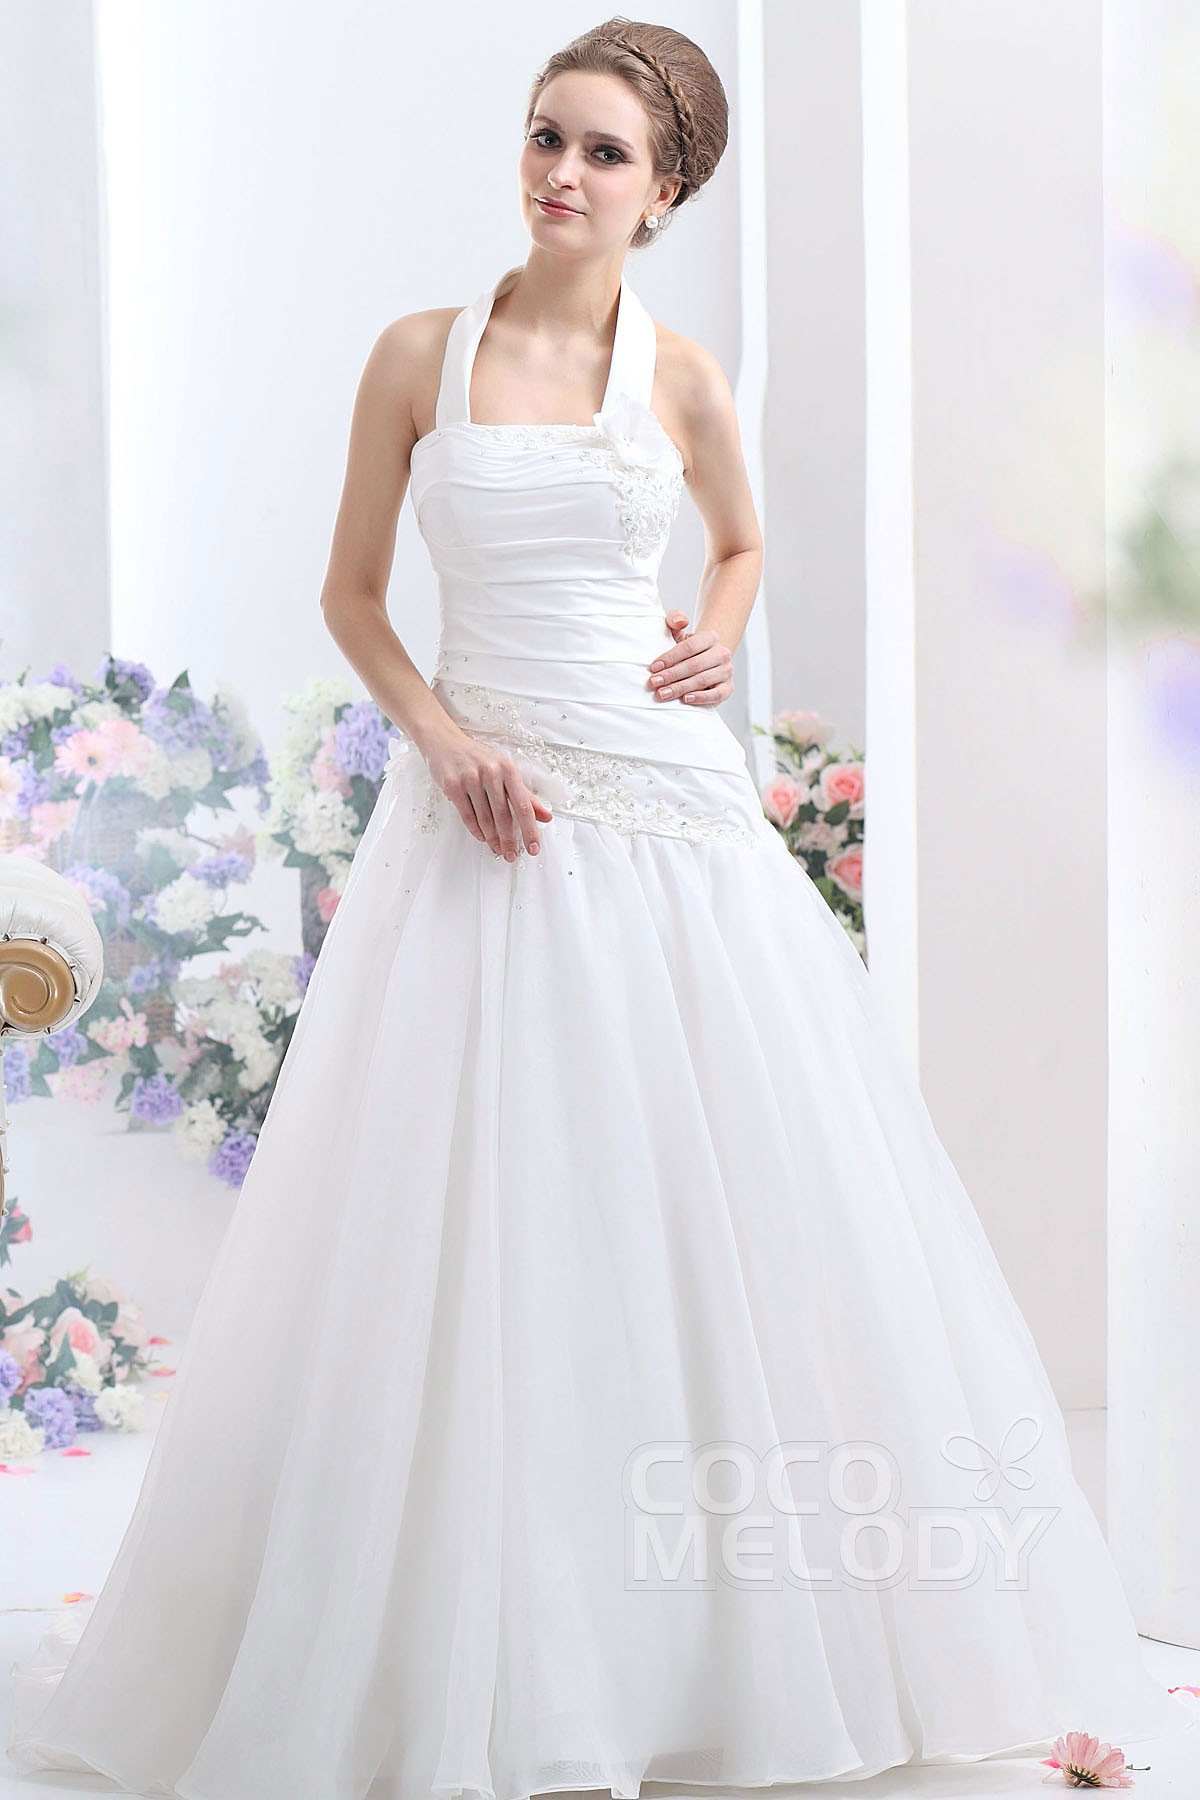 A-Line Dropped Court Train Organza Wedding Dress CWLT1308A | Cocomelody